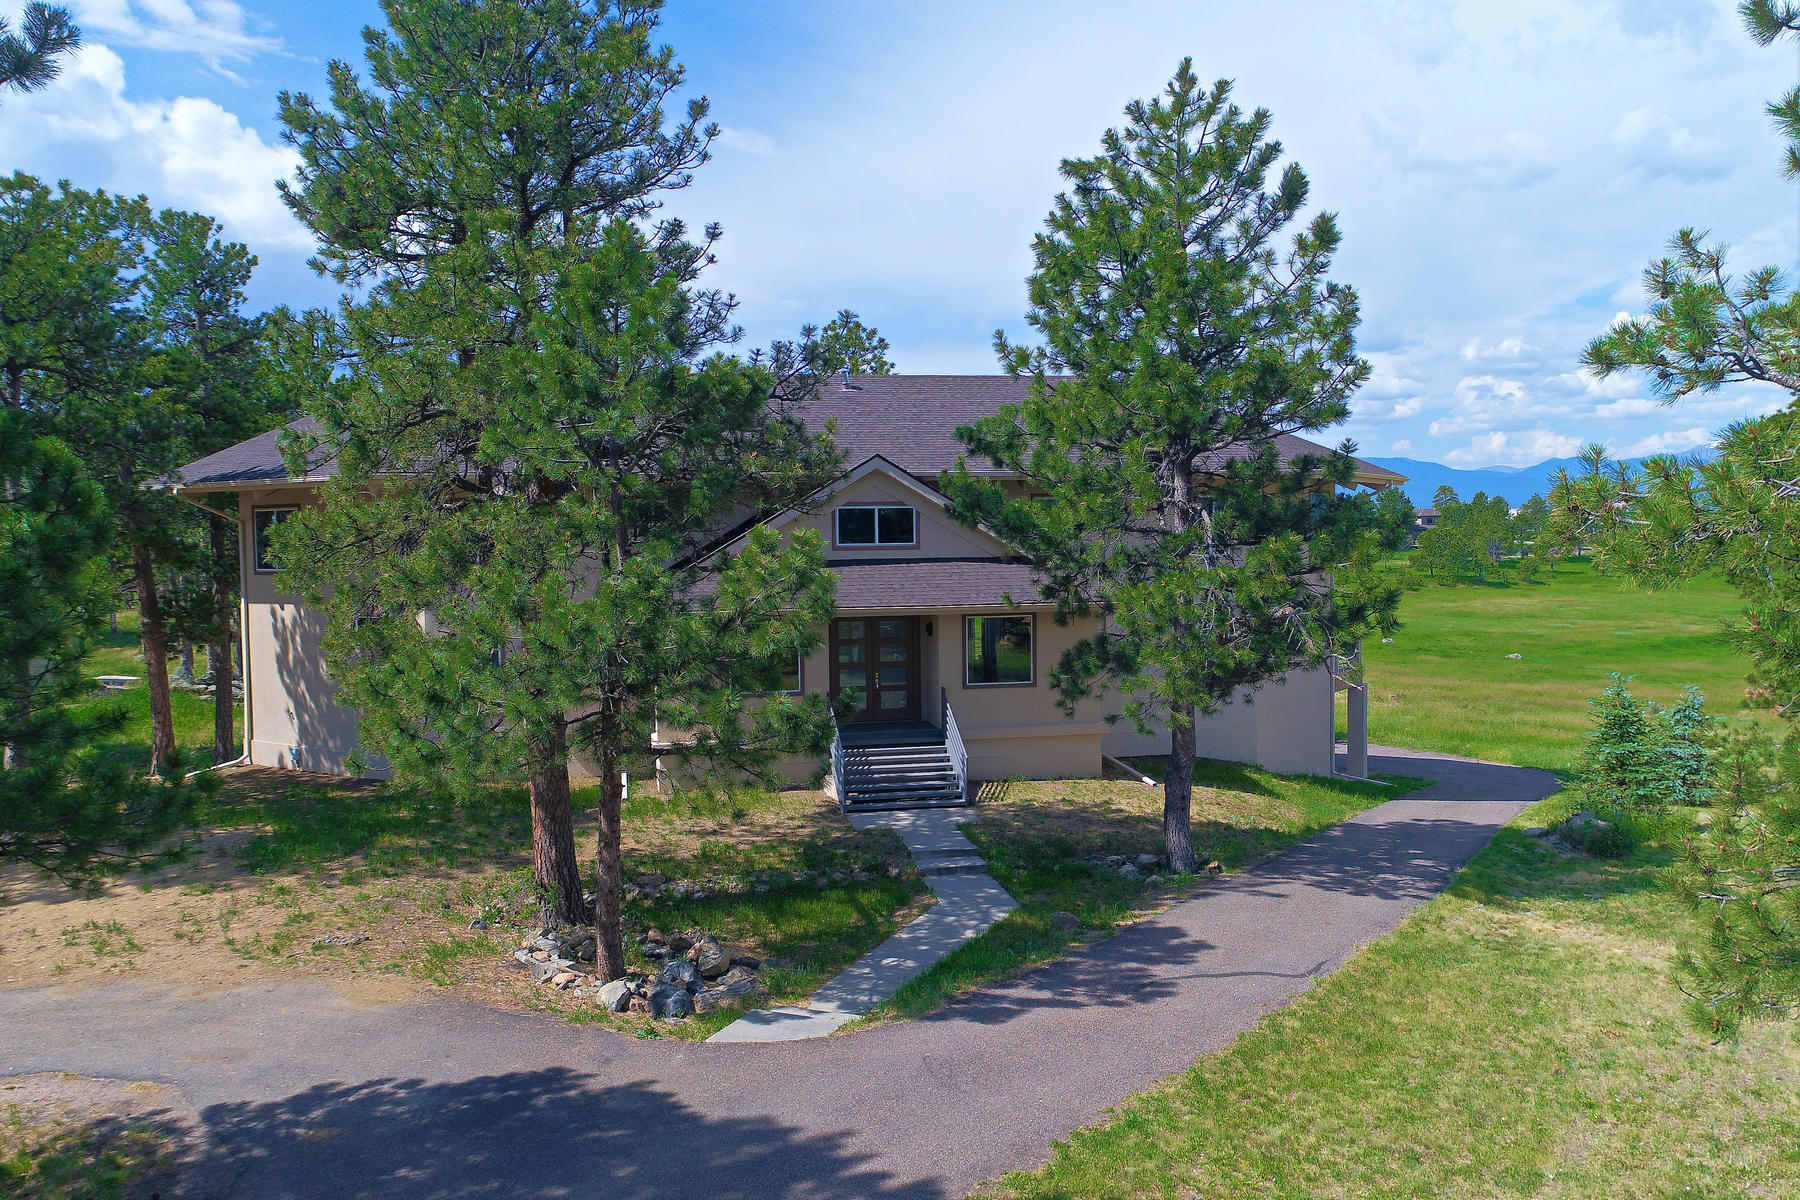 Single Family Home for Active at Open Floor Plan with Stunning Mt Evans Views 1523 Copper Rose Drive Golden, Colorado 80401 United States